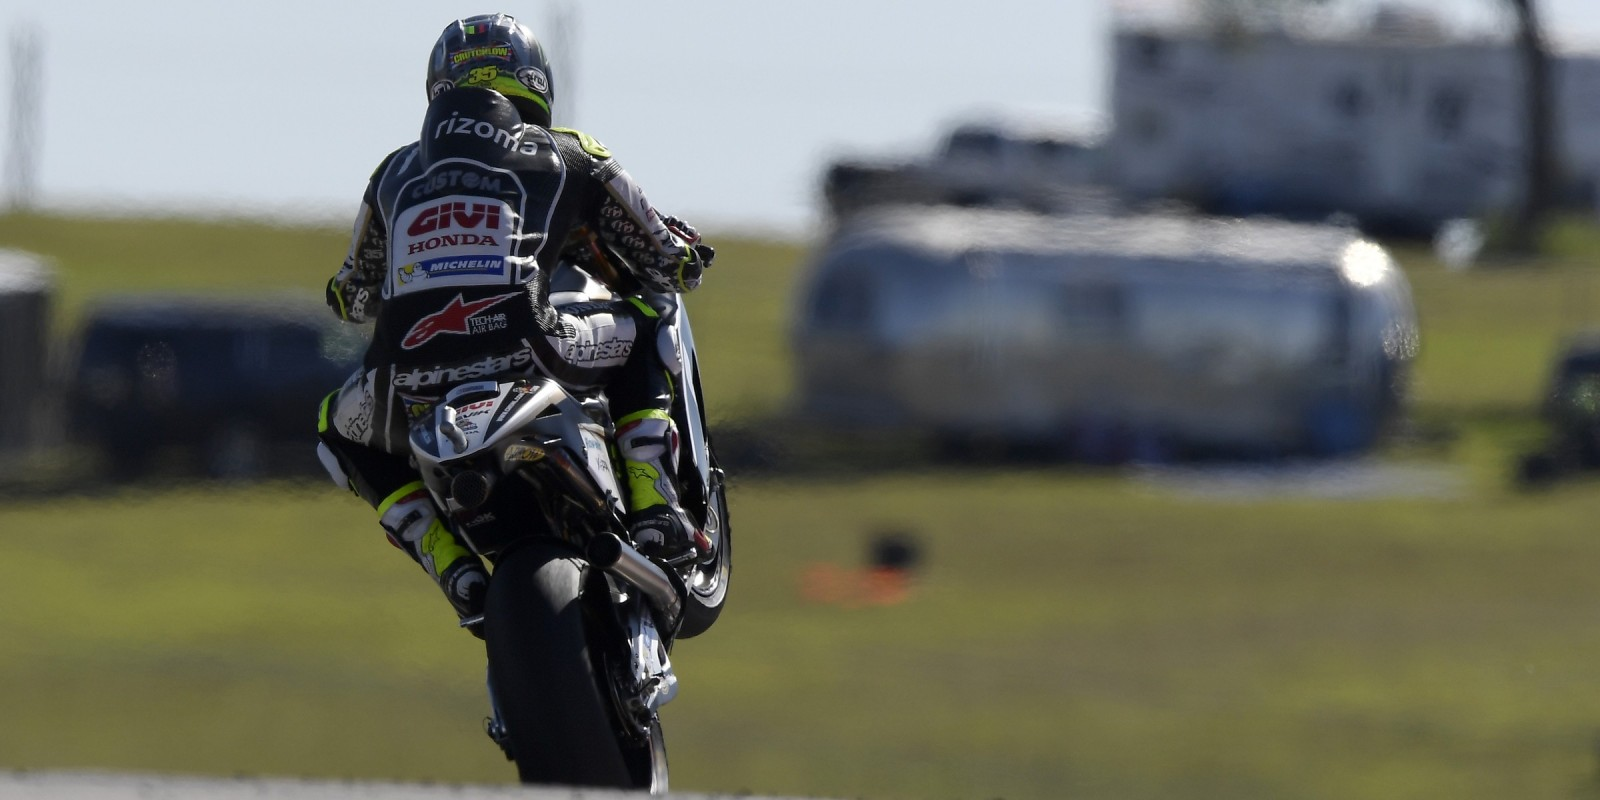 Cal Crutchlow at the 2017 Grand Prix of Americas